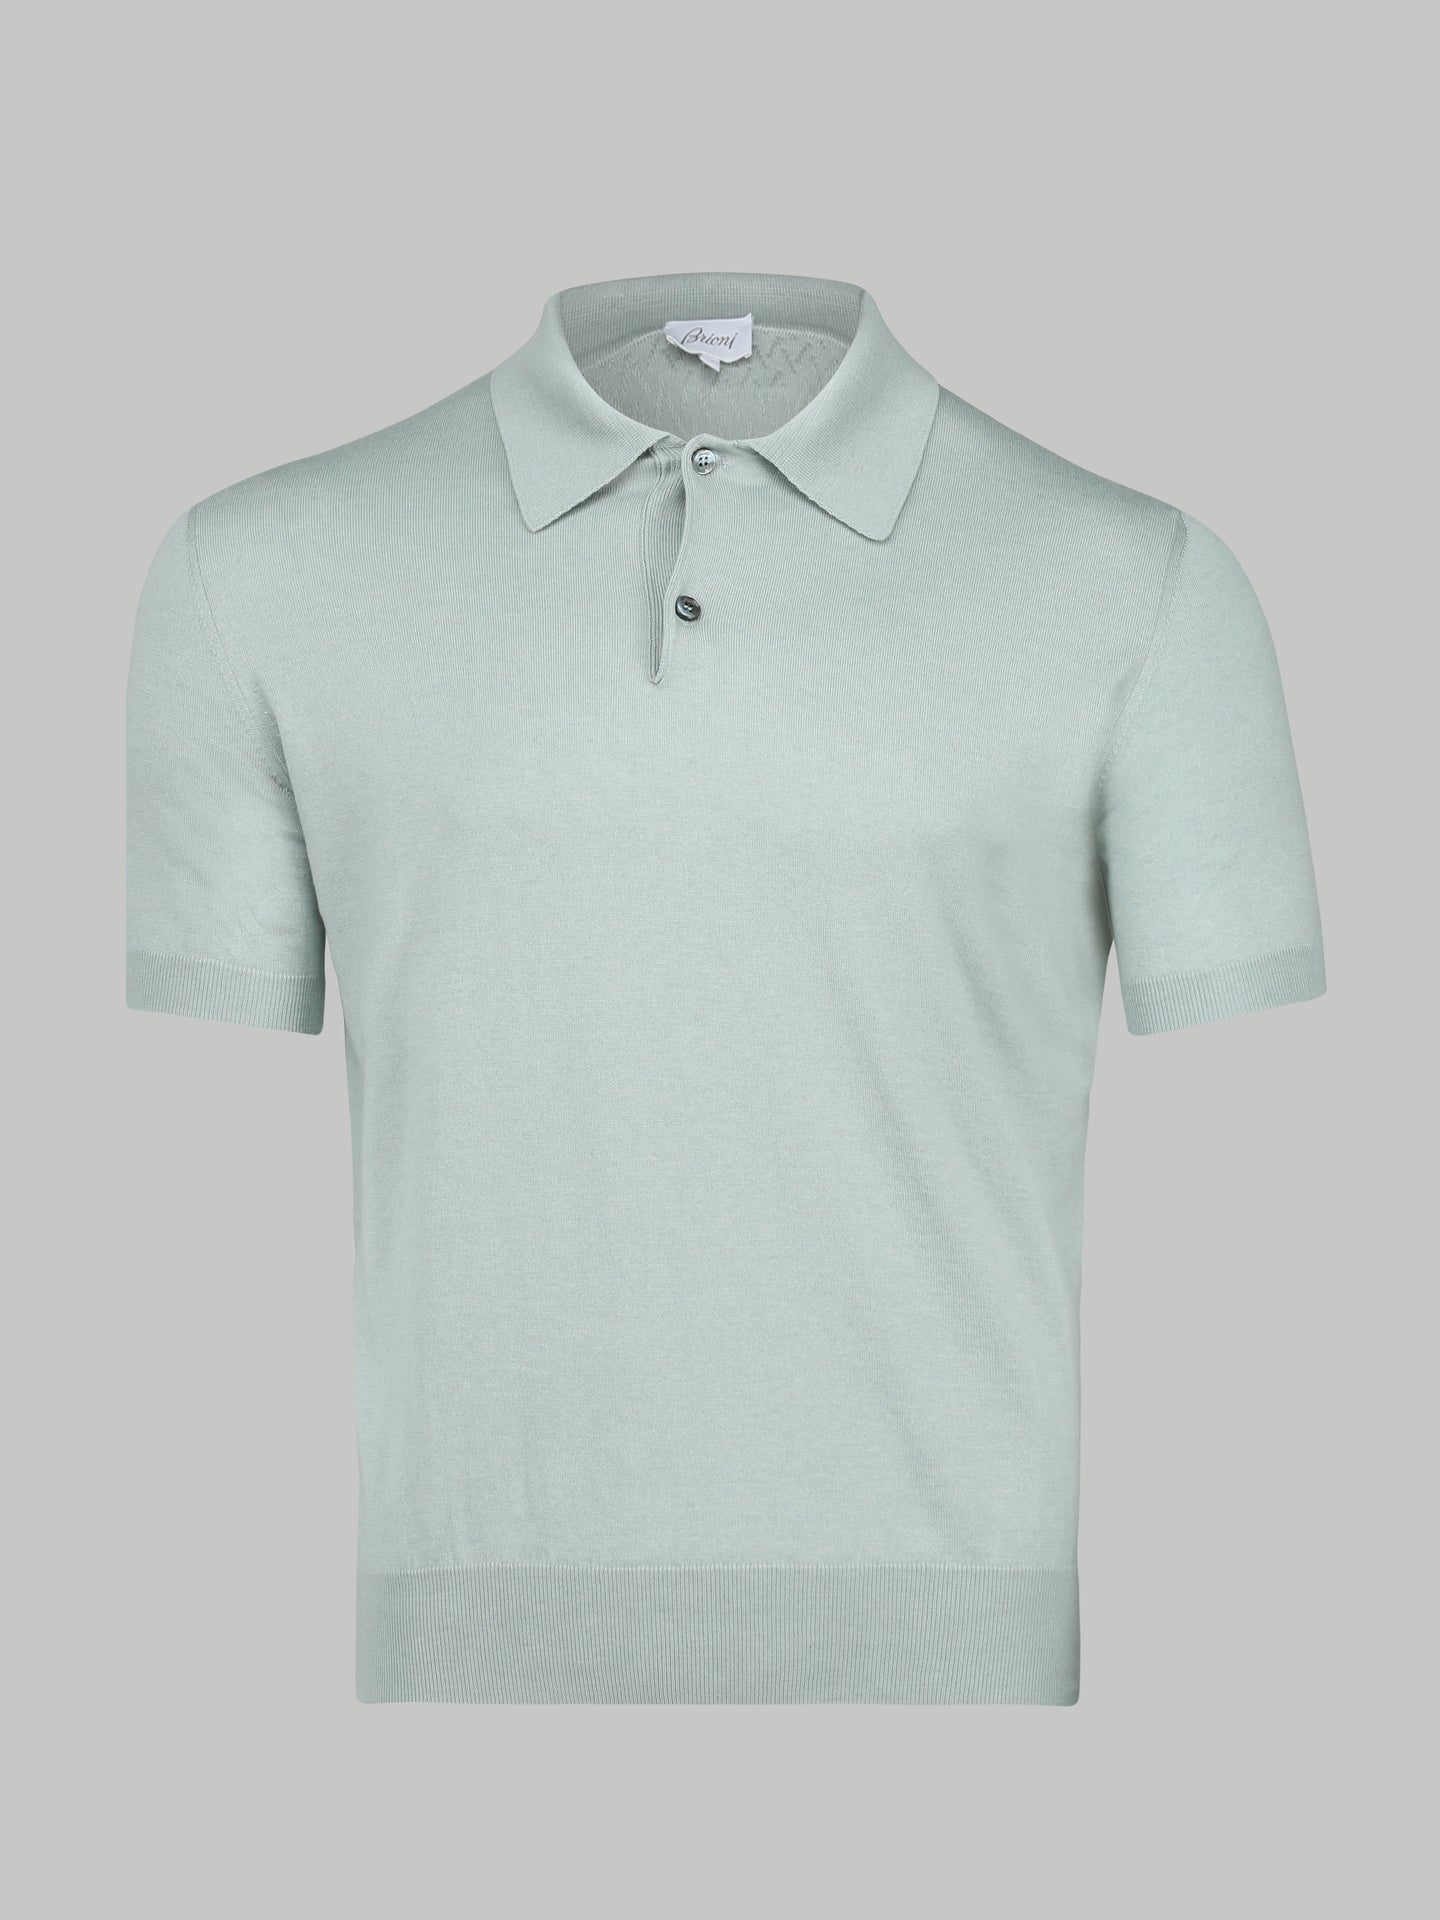 Brioni Silk and Wool Polo (Teel) - Union 22